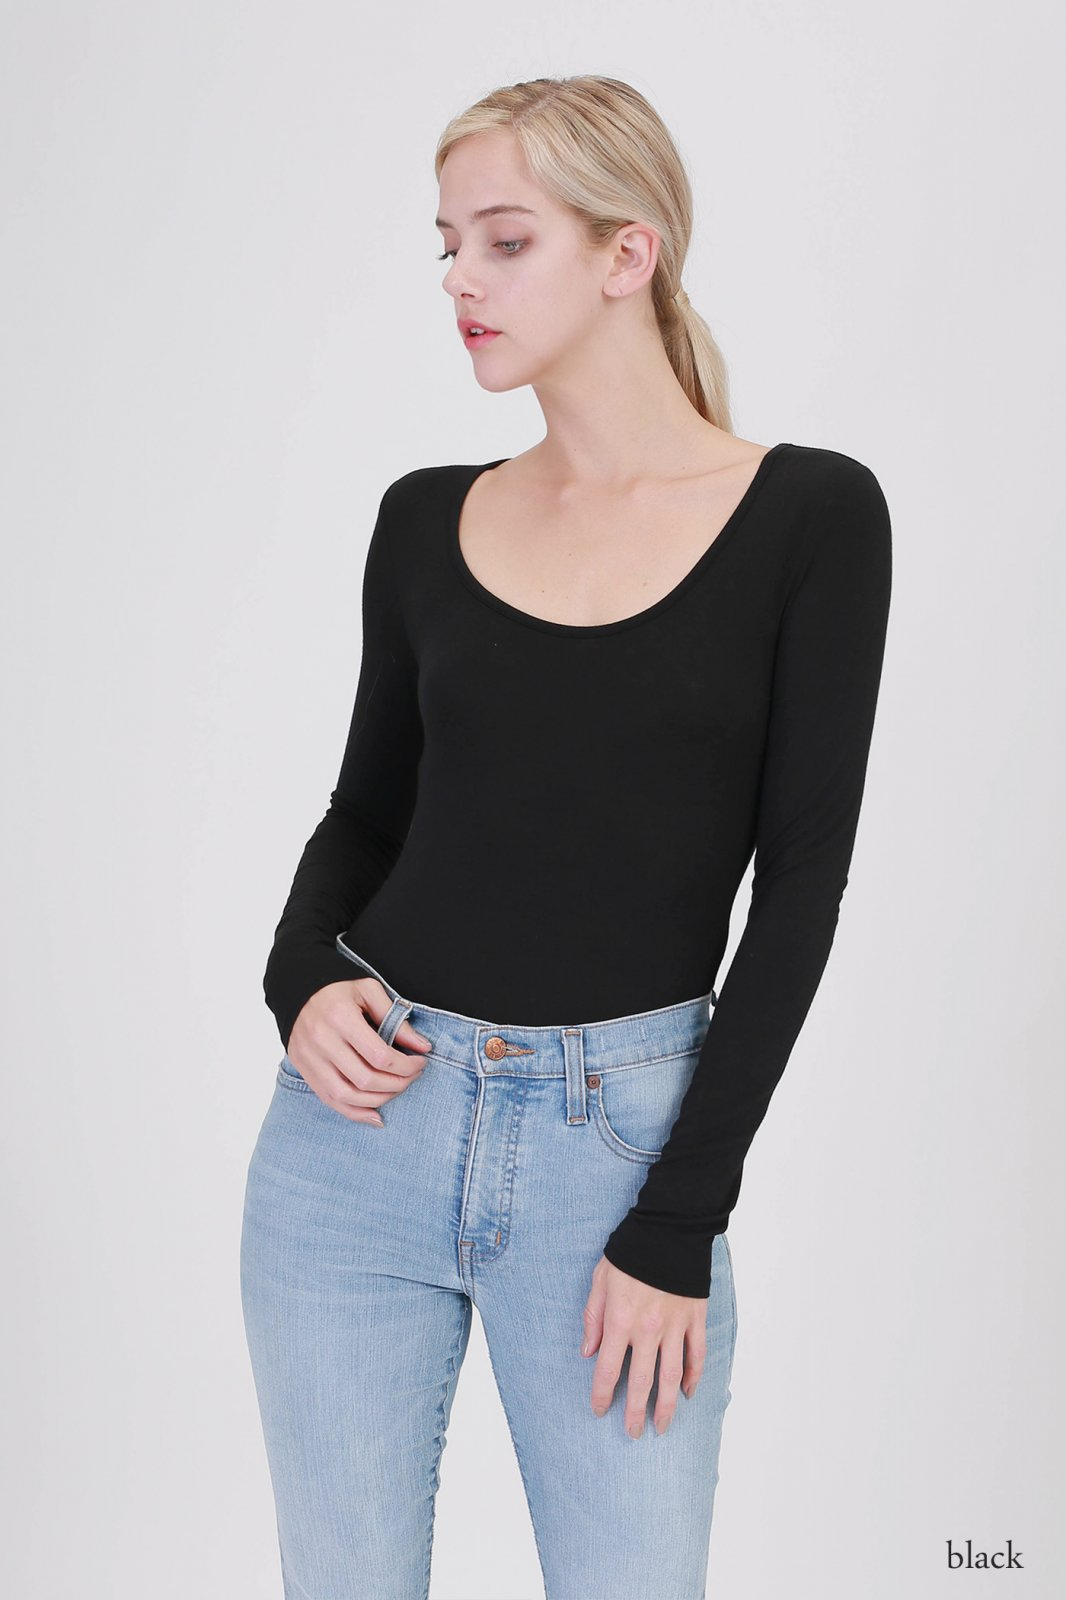 Bodysuit - Scoop Neck Long Sleeve BLACK * RAYON